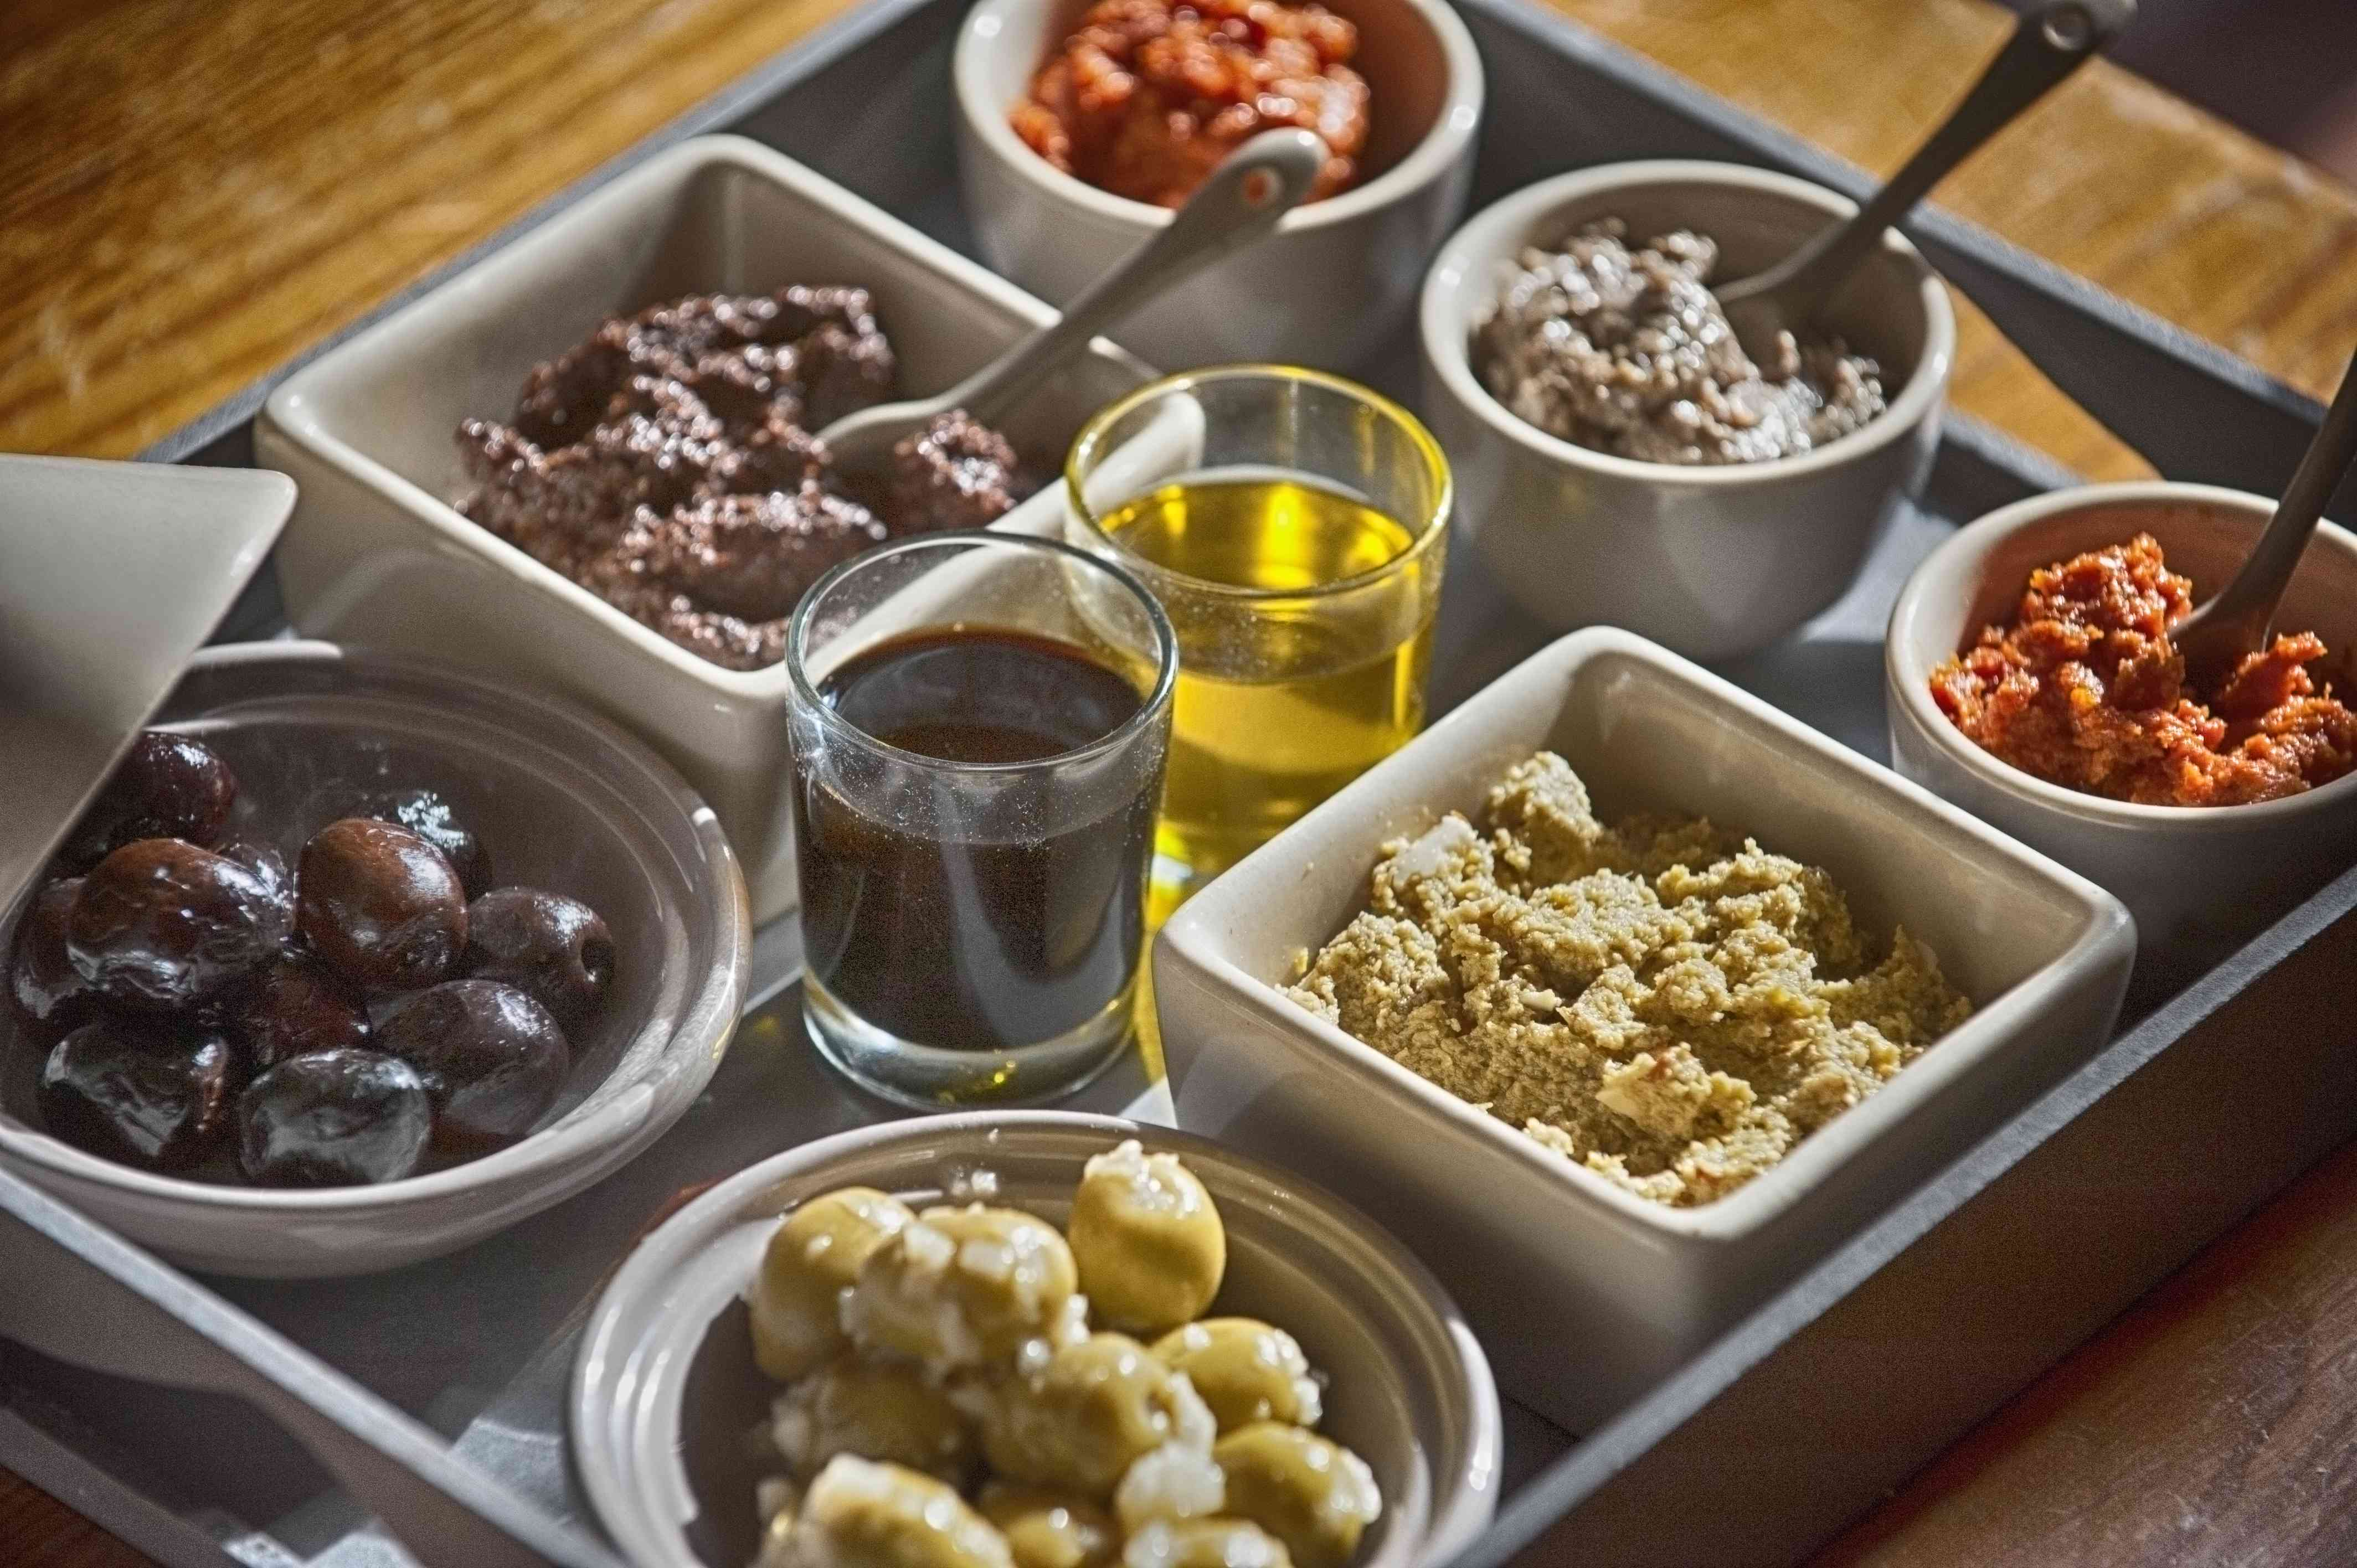 a tray of traditional provencal aperitifs - black and green olives, prepared with garlic; black tapenade, green tapenade, caviare de tomate, anchoiade (anchovy spread) olive oil and balsamic vinegar.